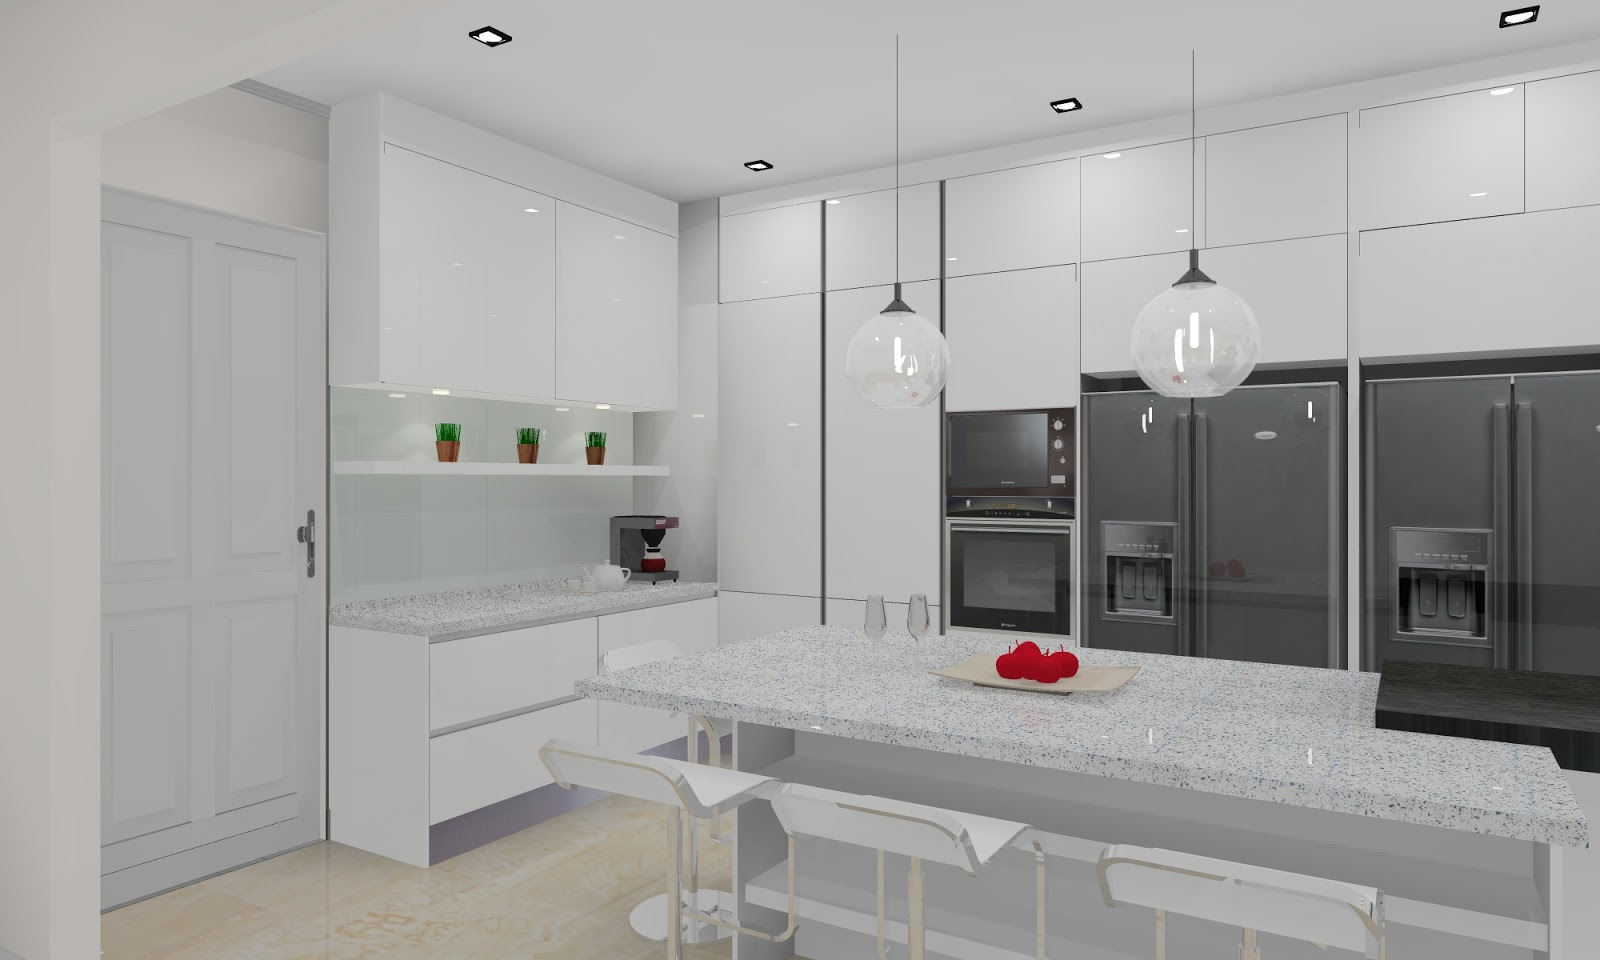 meridian interior design and kitchen design in kuala neptune kitchen full height cabinets limehouse 690 full